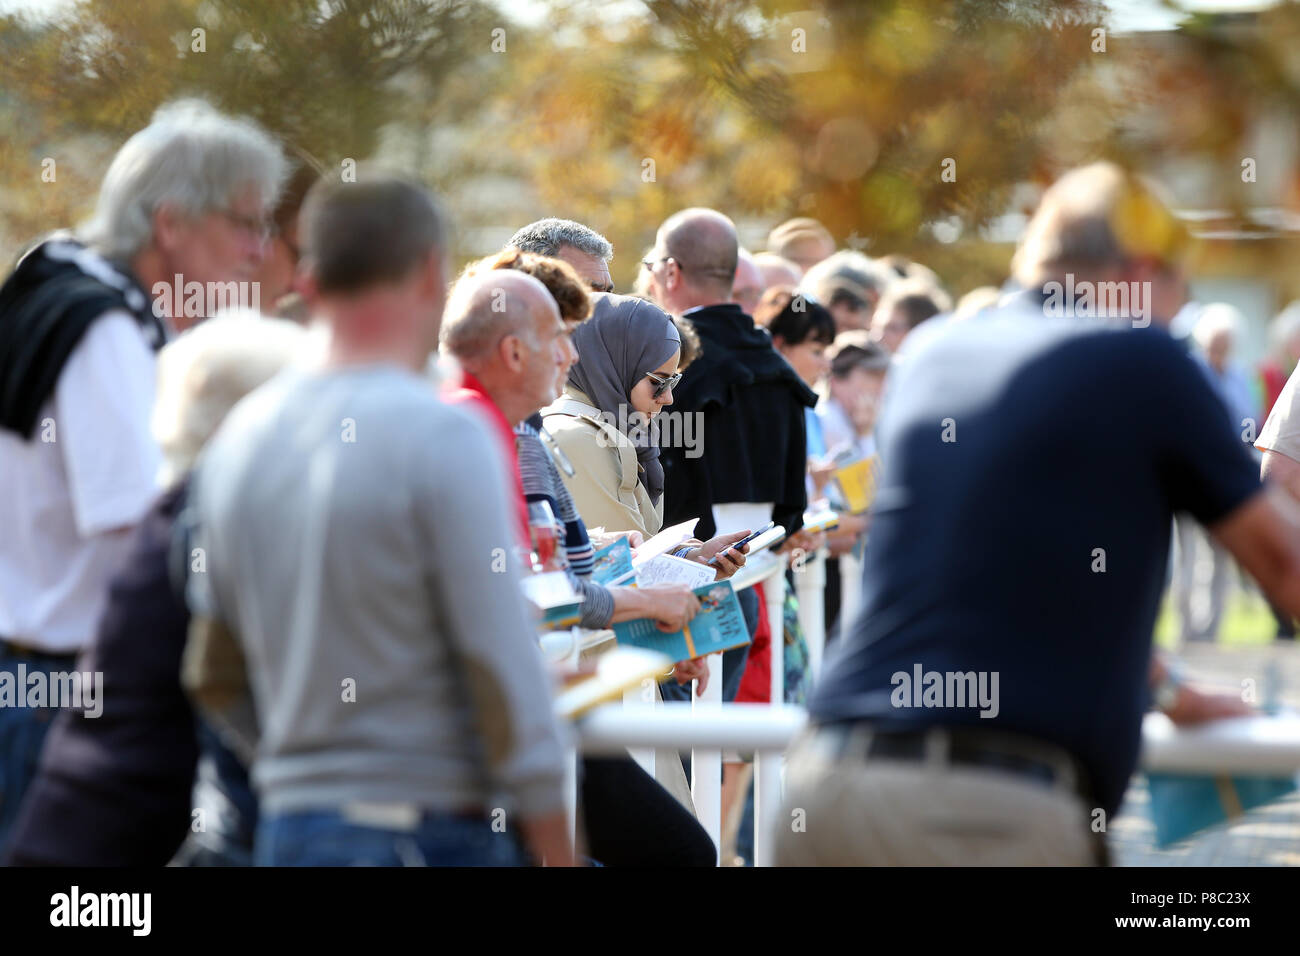 Iffezheim, interested parties at the BBAG annual auction - Stock Image